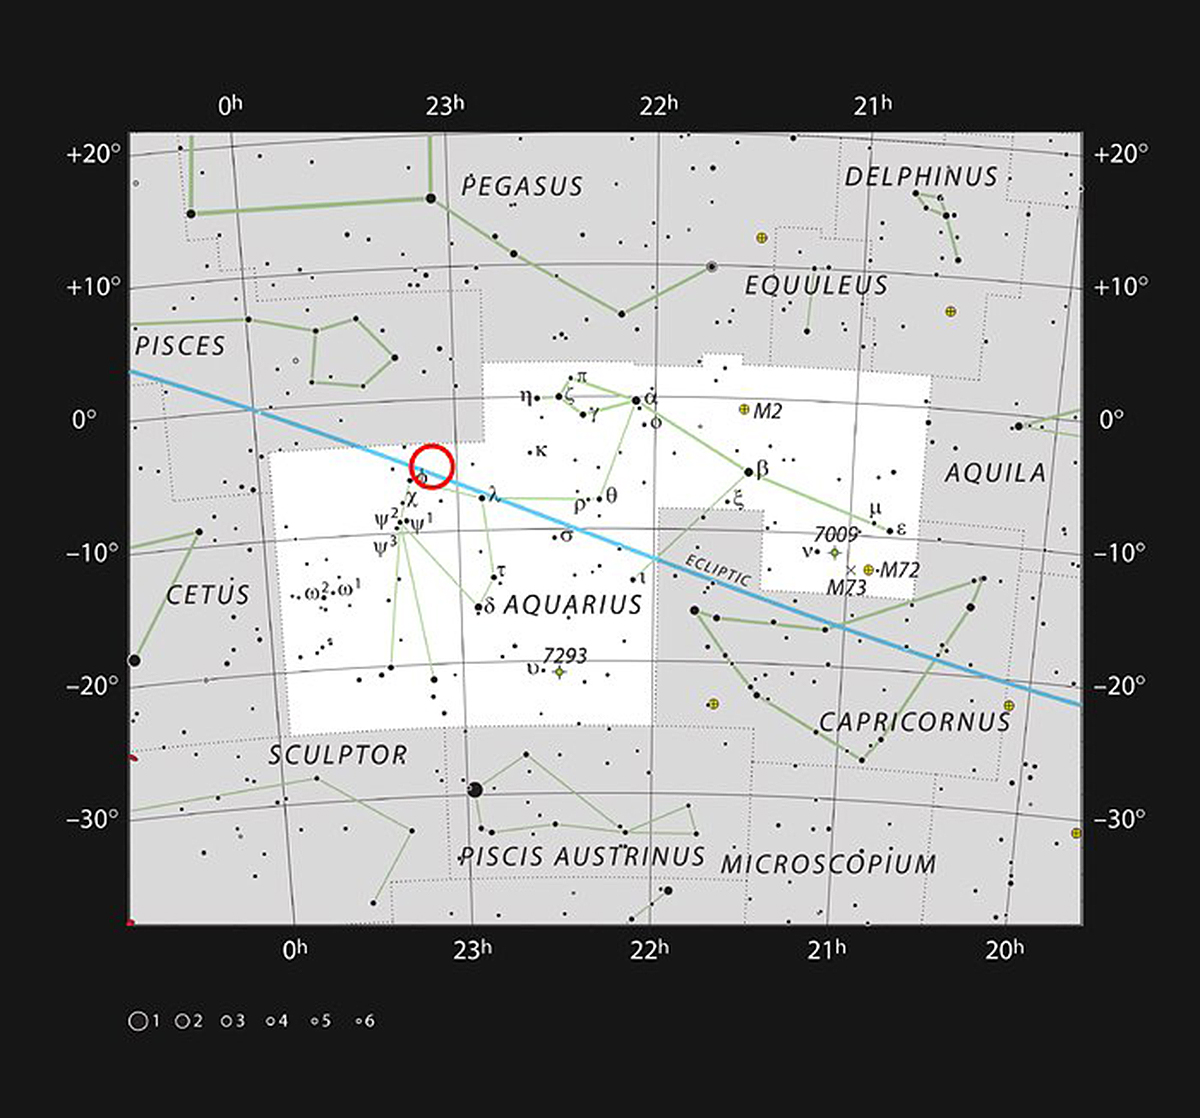 This chart shows the naked eye stars visible on a clear dark night in the sprawling constellation of Aquarius (The Water Carrier). The position of the faint and very red ultracool dwarf star TRAPPIST-1 is marked. Although it is relatively close to the Sun, it is very faint and not visible in small telescopes.